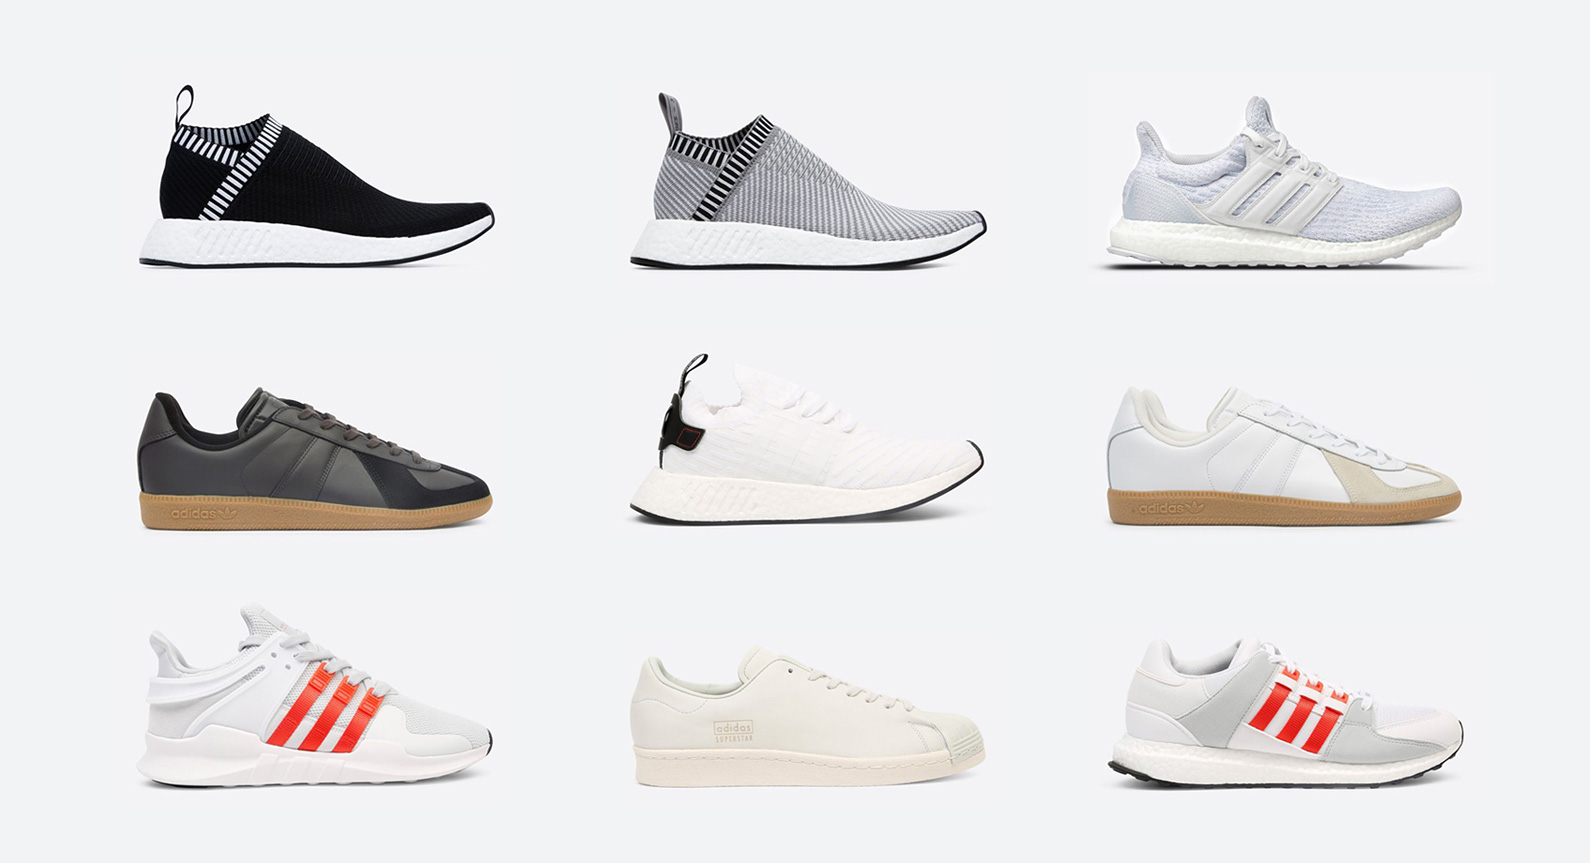 This Month's New Sneaker Releases From Adidas